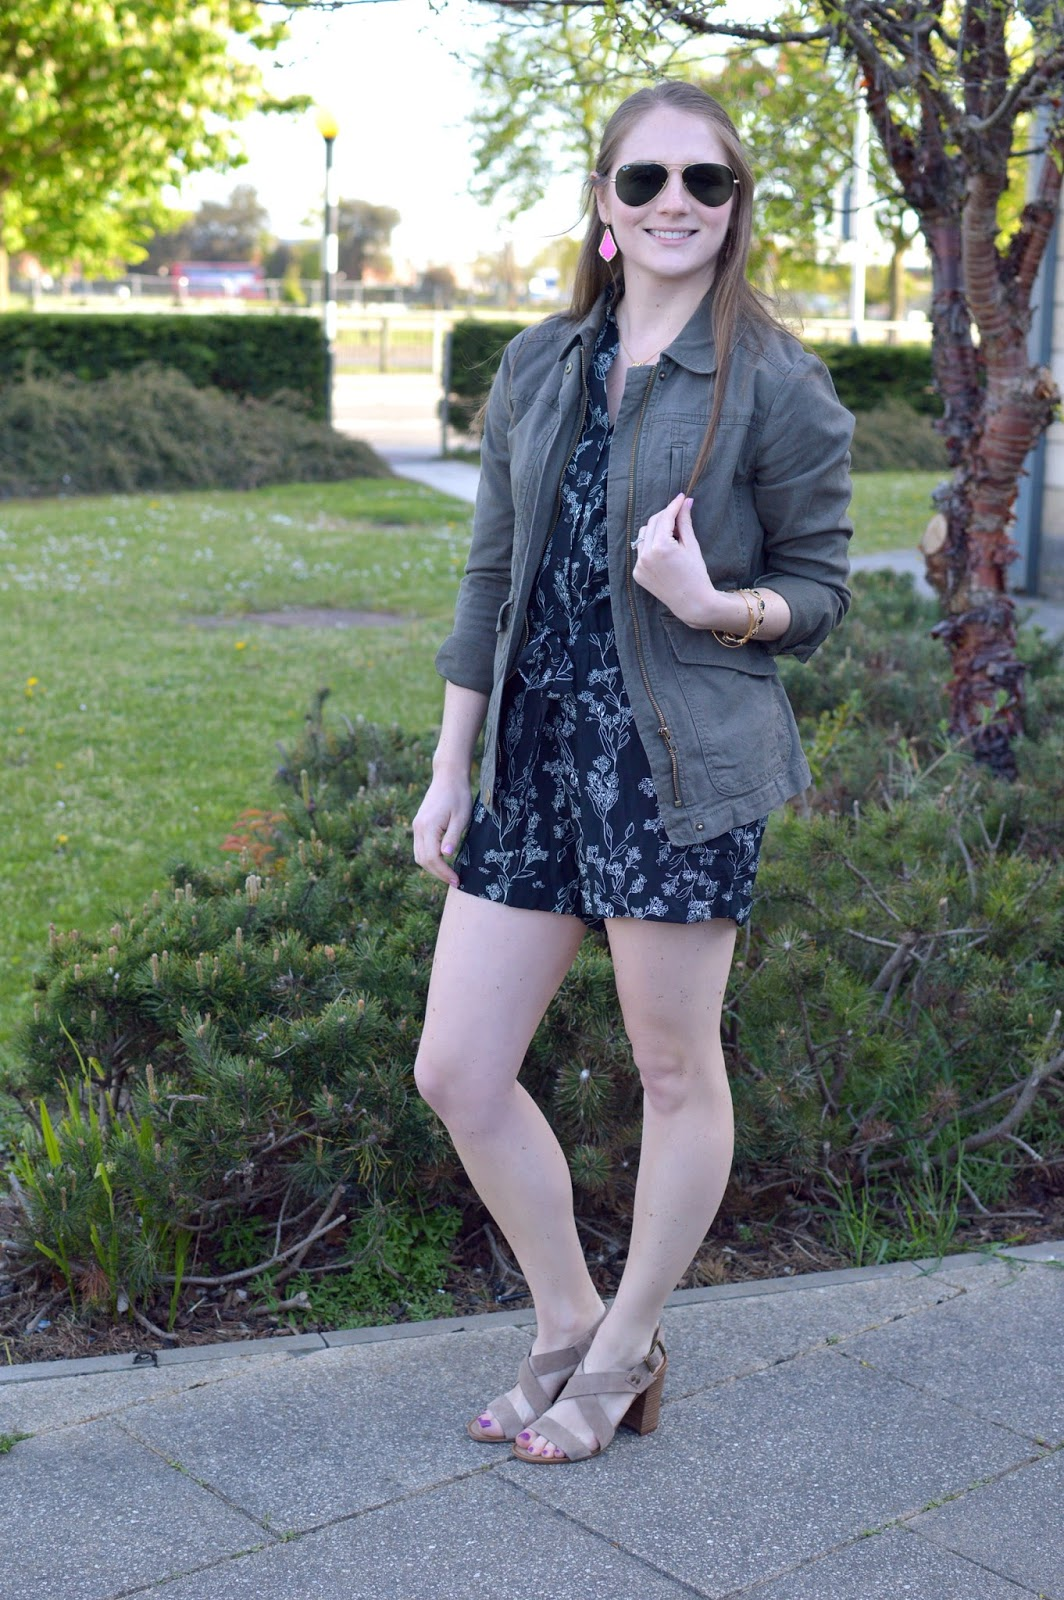 floral romper with a military jacket | a memory of us | spring outfit ideas | what to wear this spring | summer outfit ideas | what to wear with a military jacket|  how to style a romper | layering with a romper | block heels | spring trends |